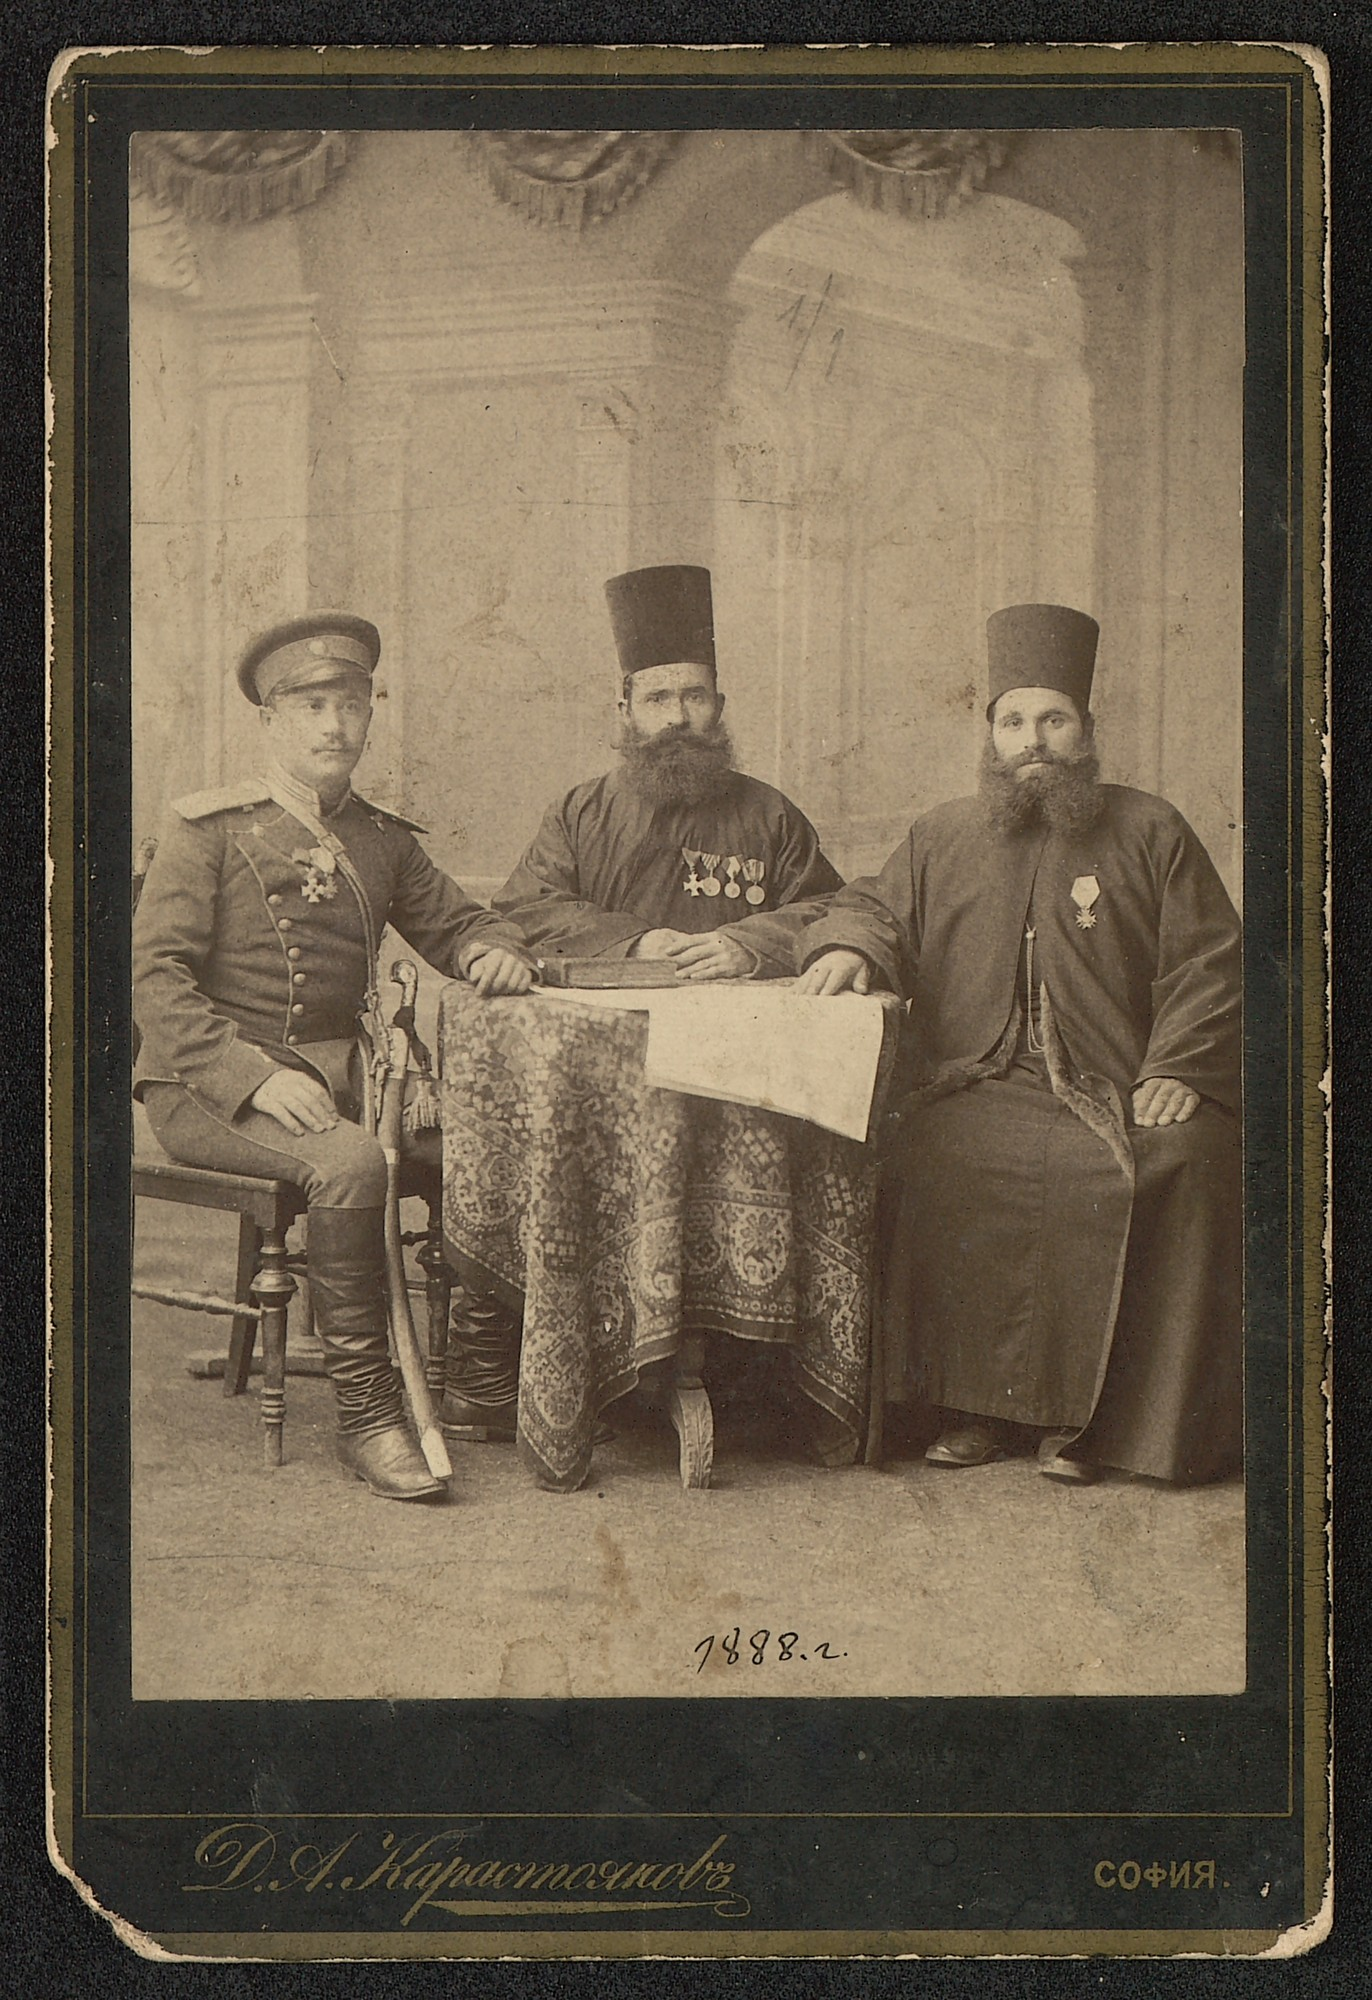 The priests Petar Draganov and Petko Frangov, and Prodan Tishkov, © St. Cyril and St. Methodius National Library